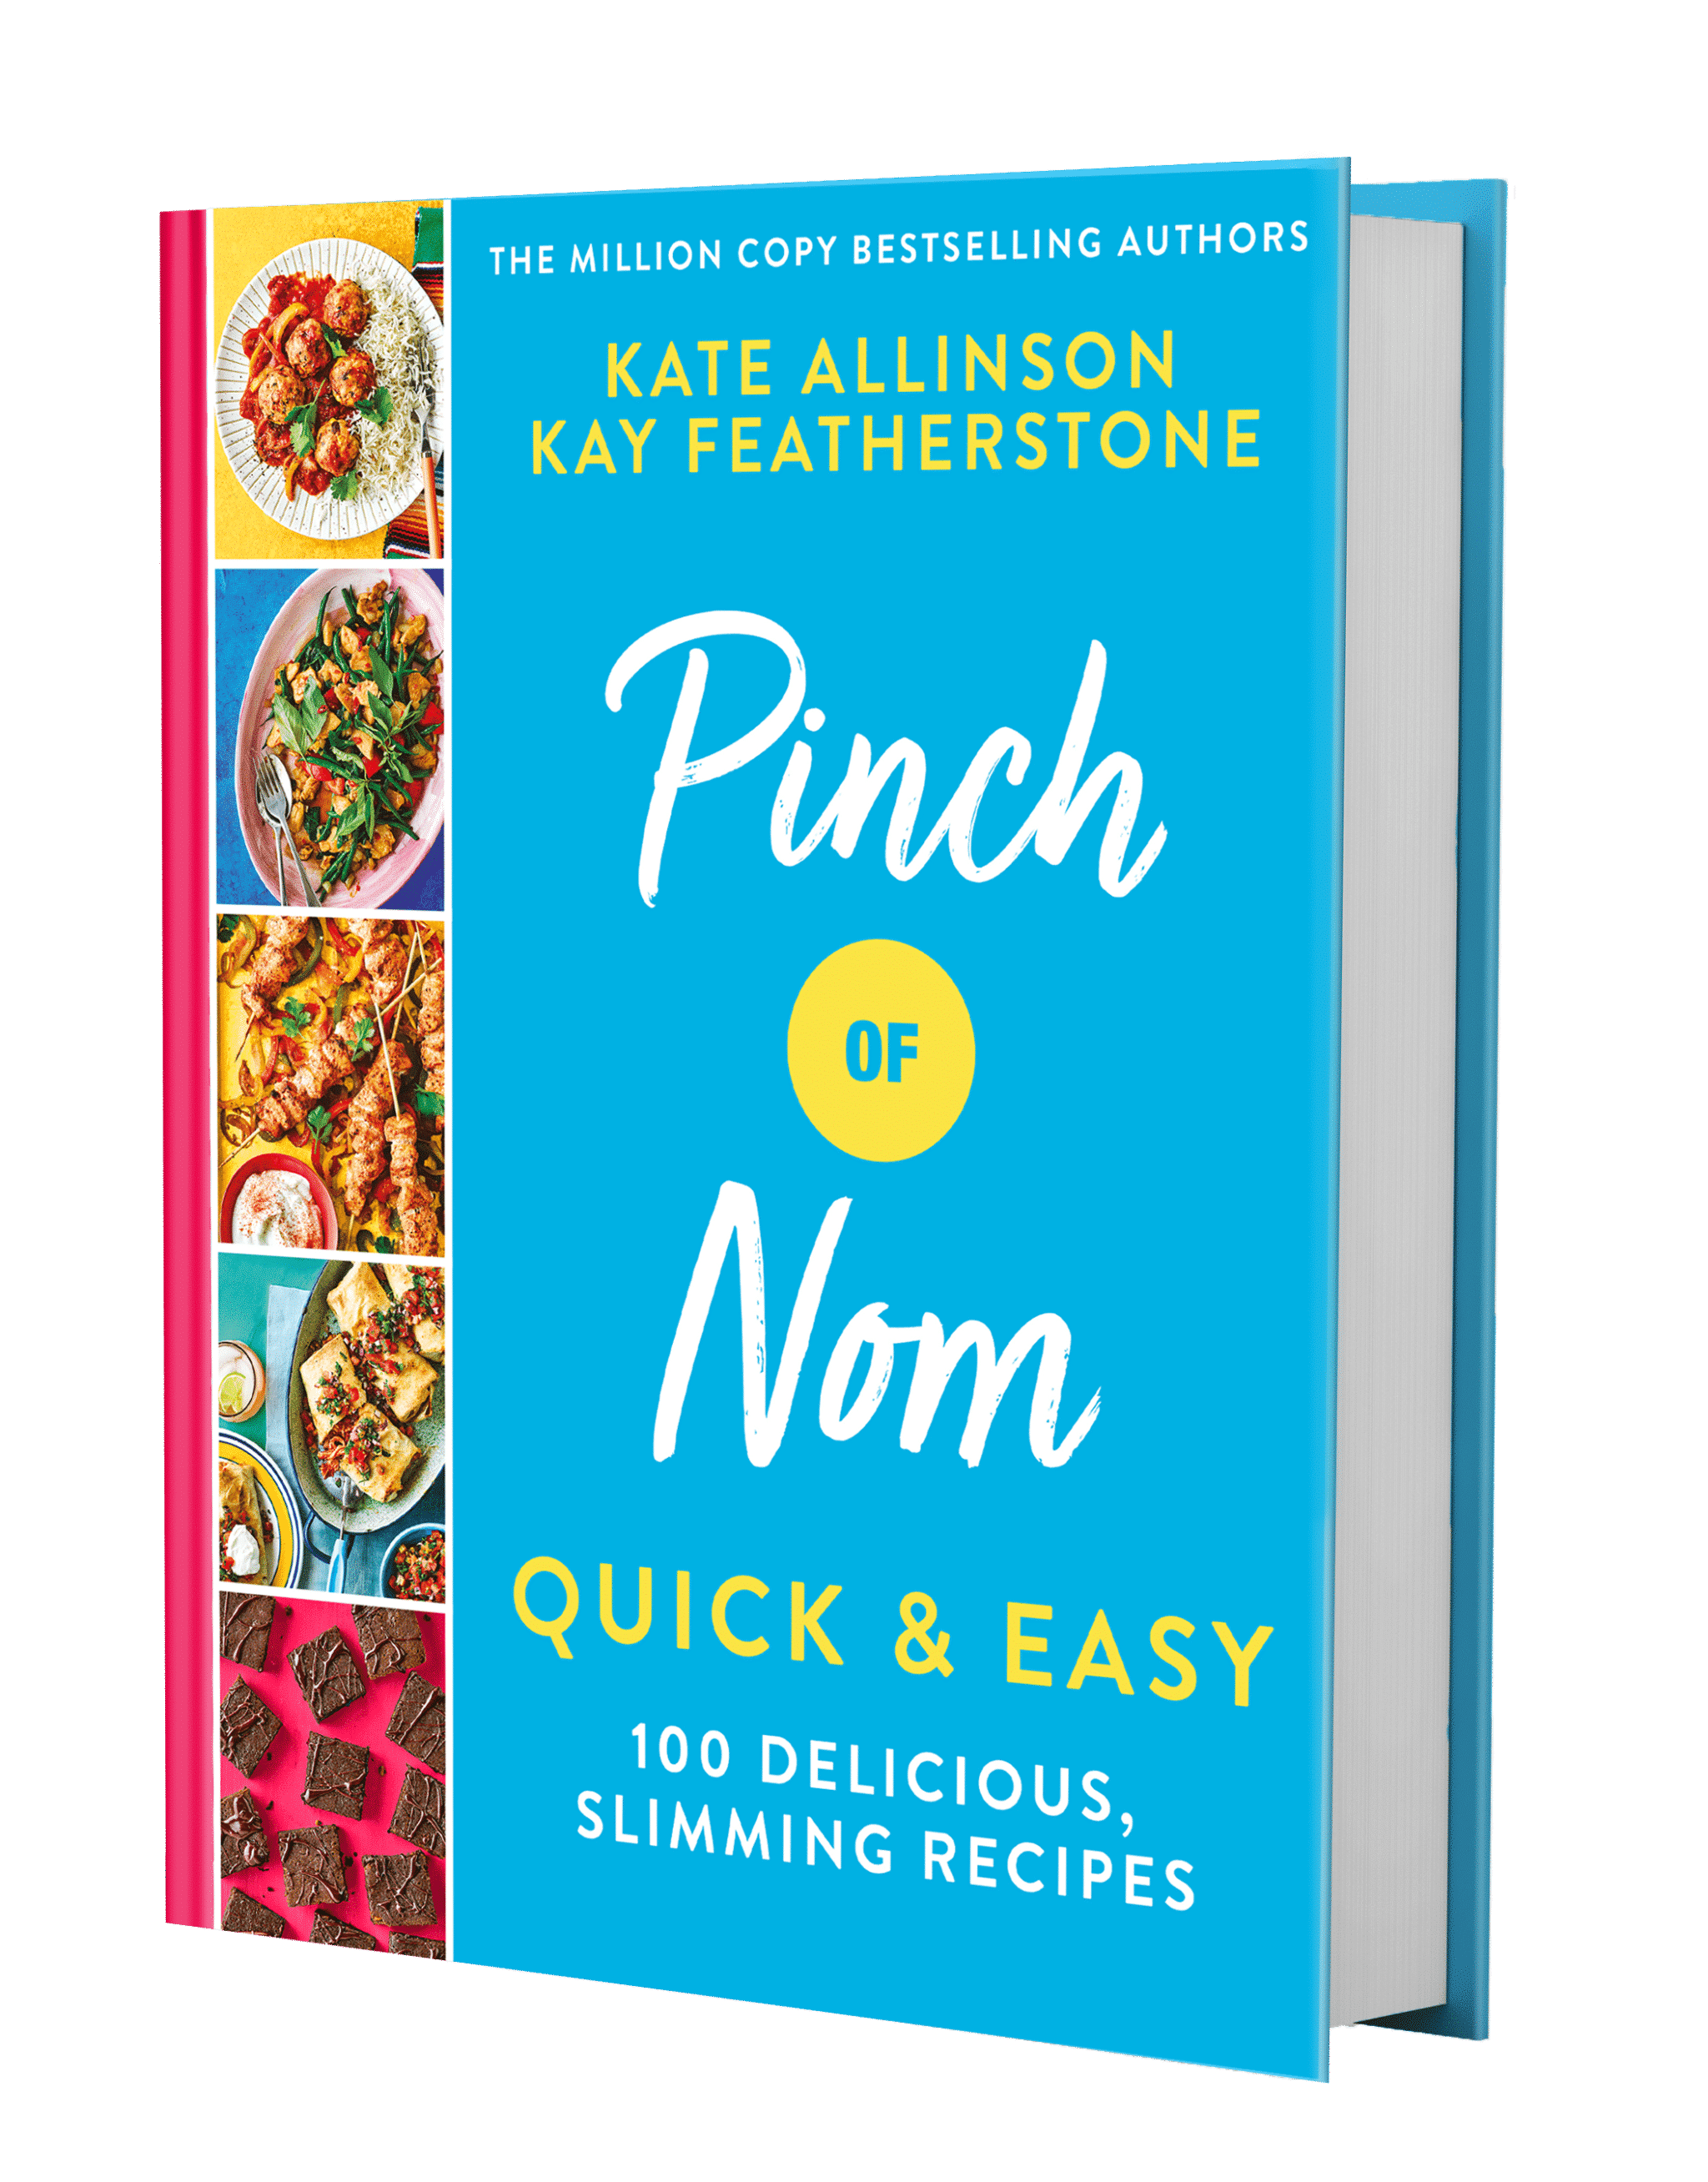 Order Our Third Cookbook Now! pinchofnom.com